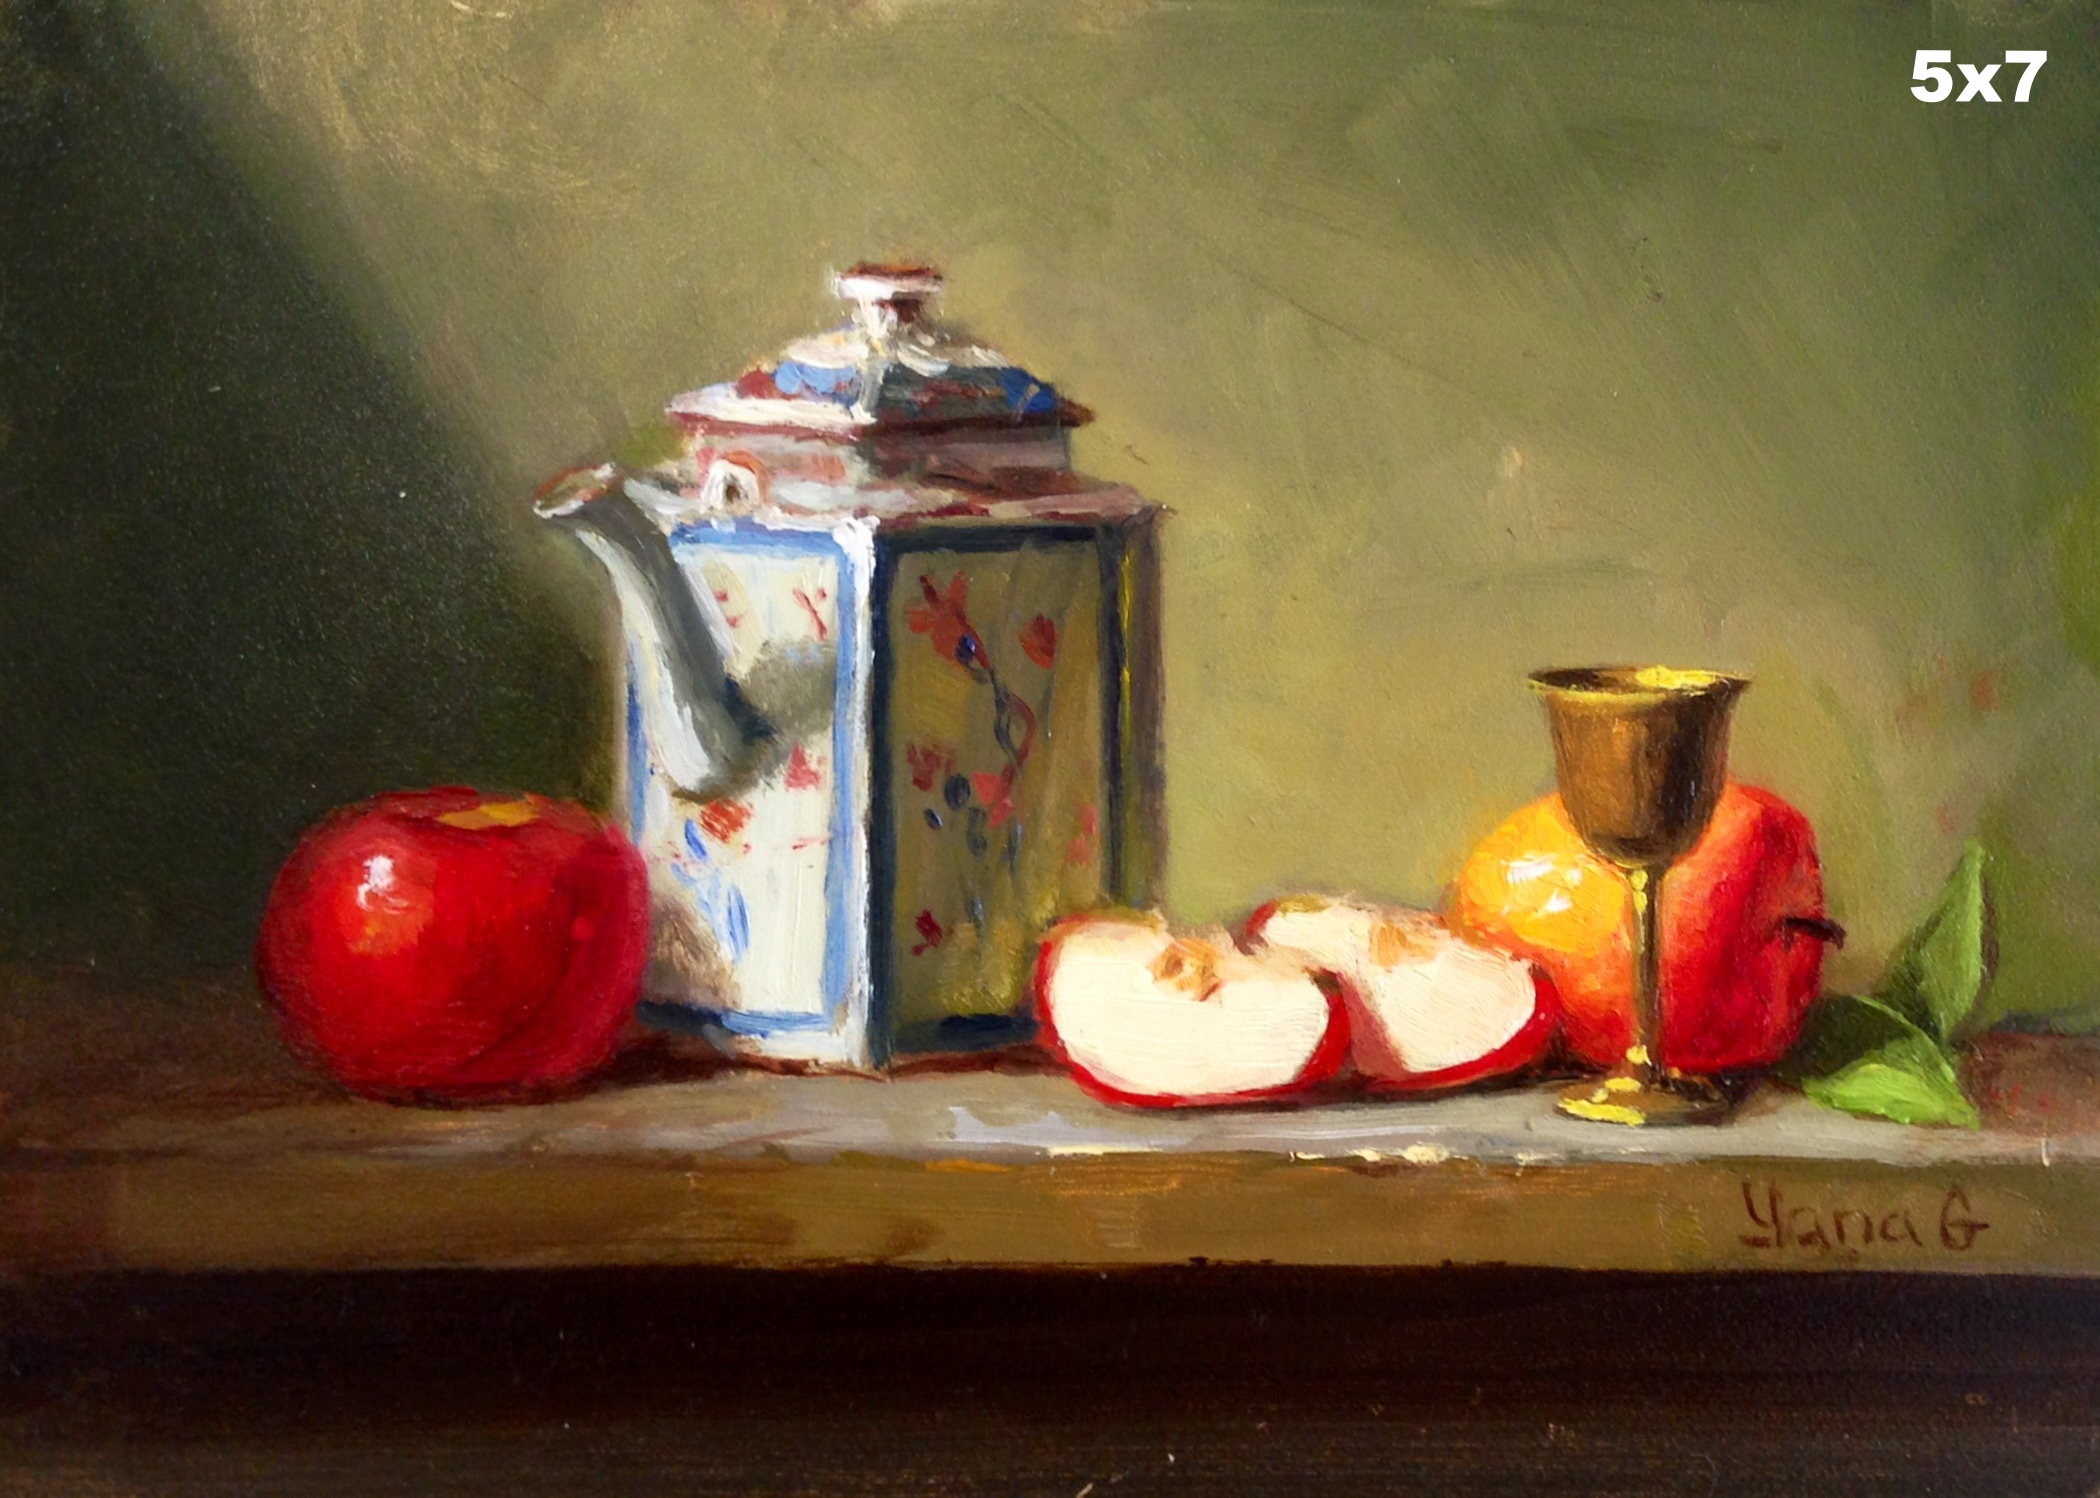 Tea pot and apples 5x7 Oil on board